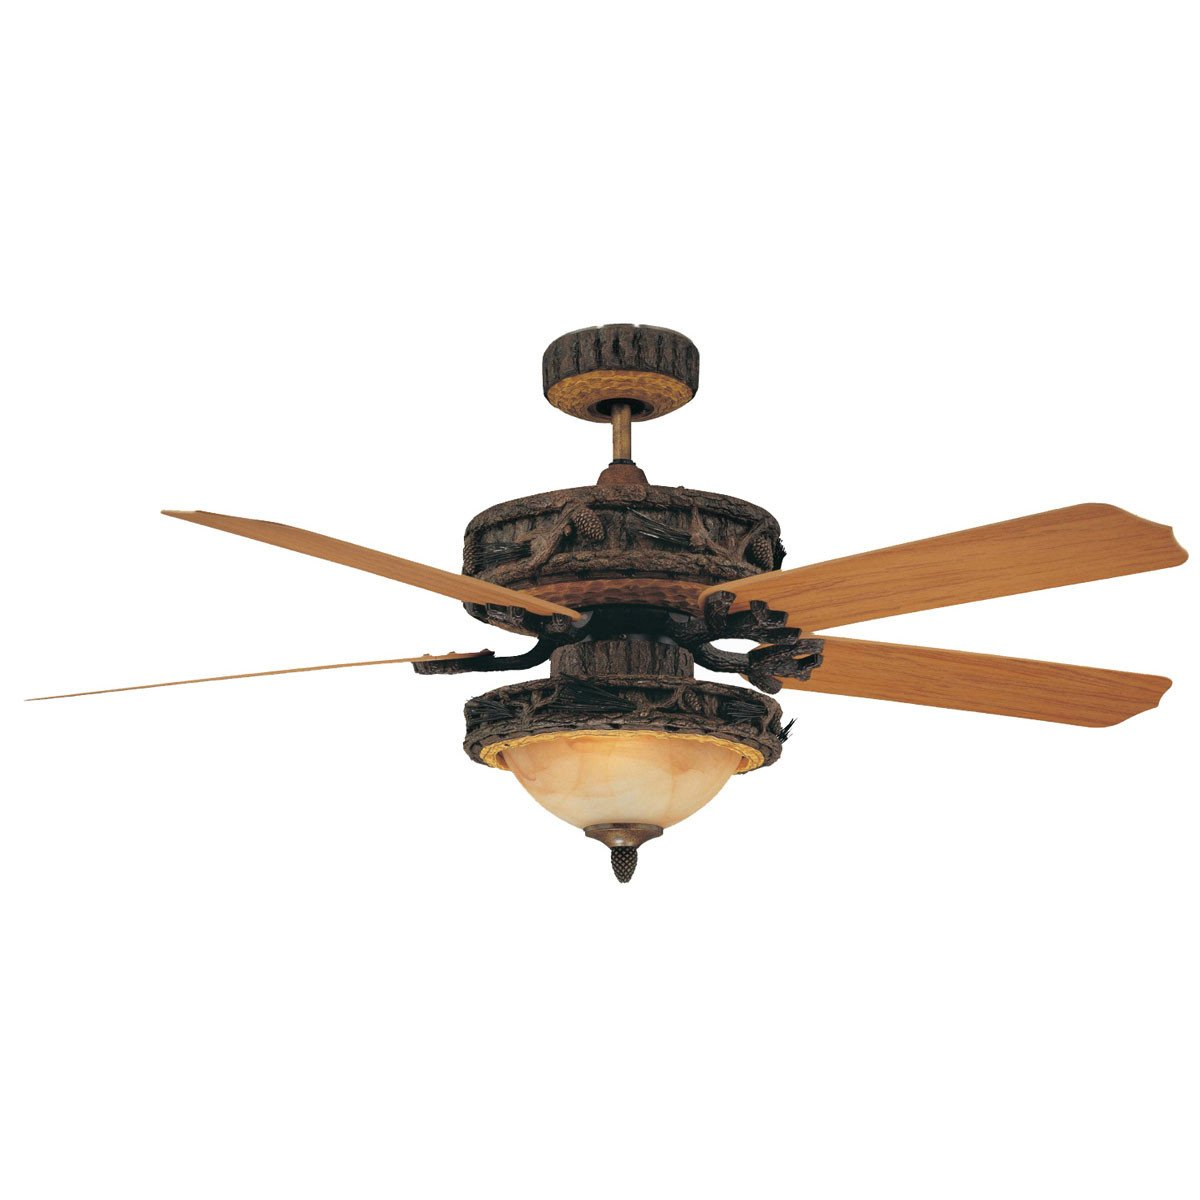 "Concord Fans 52"" Ponderosa Old World Leather Outdoor Ceiling Fan with Light"